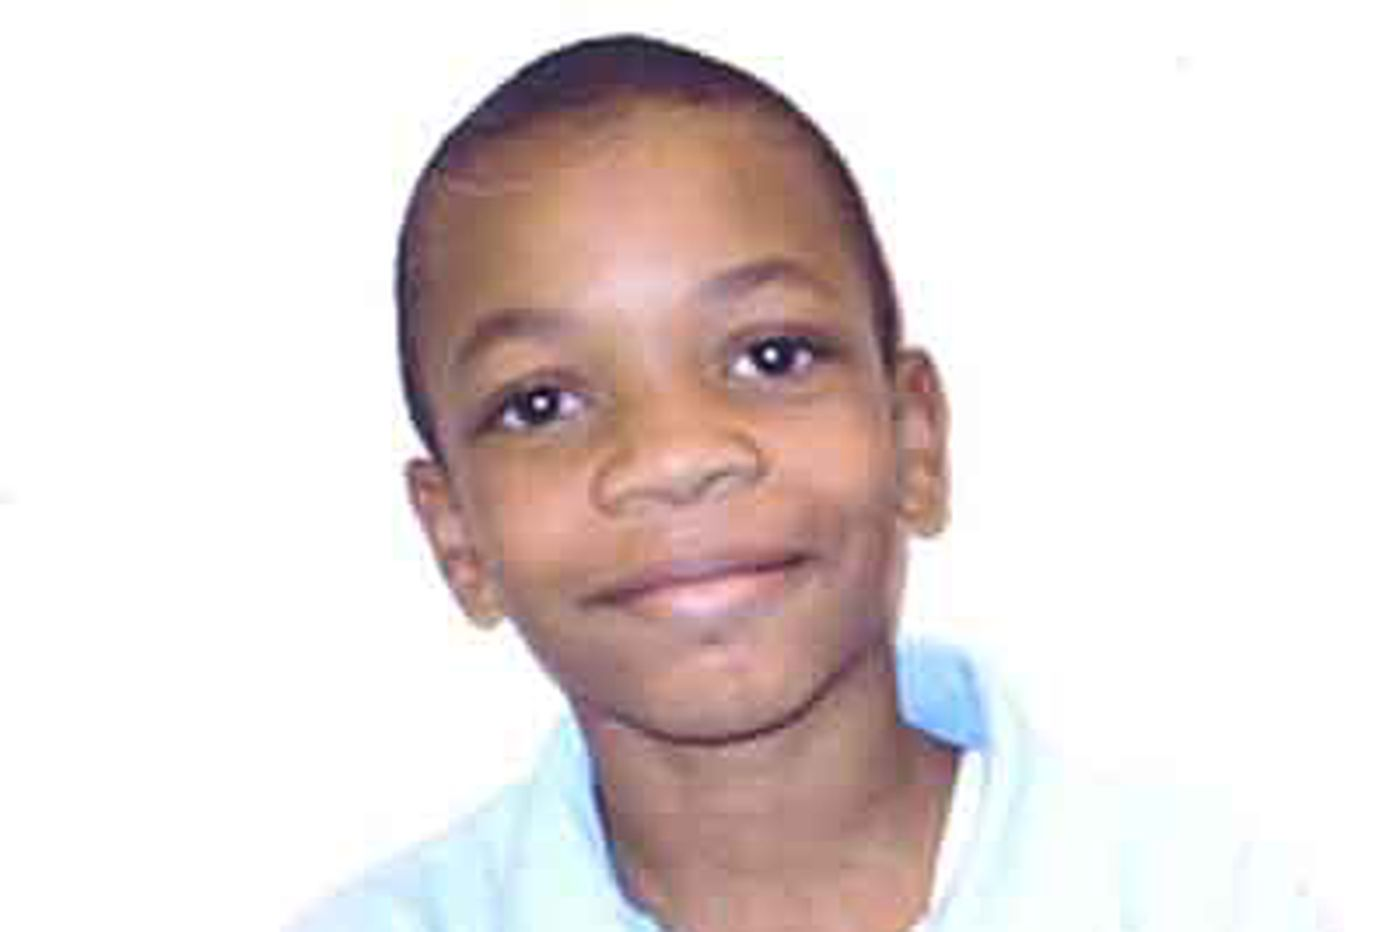 Police searching for missing boy, 12